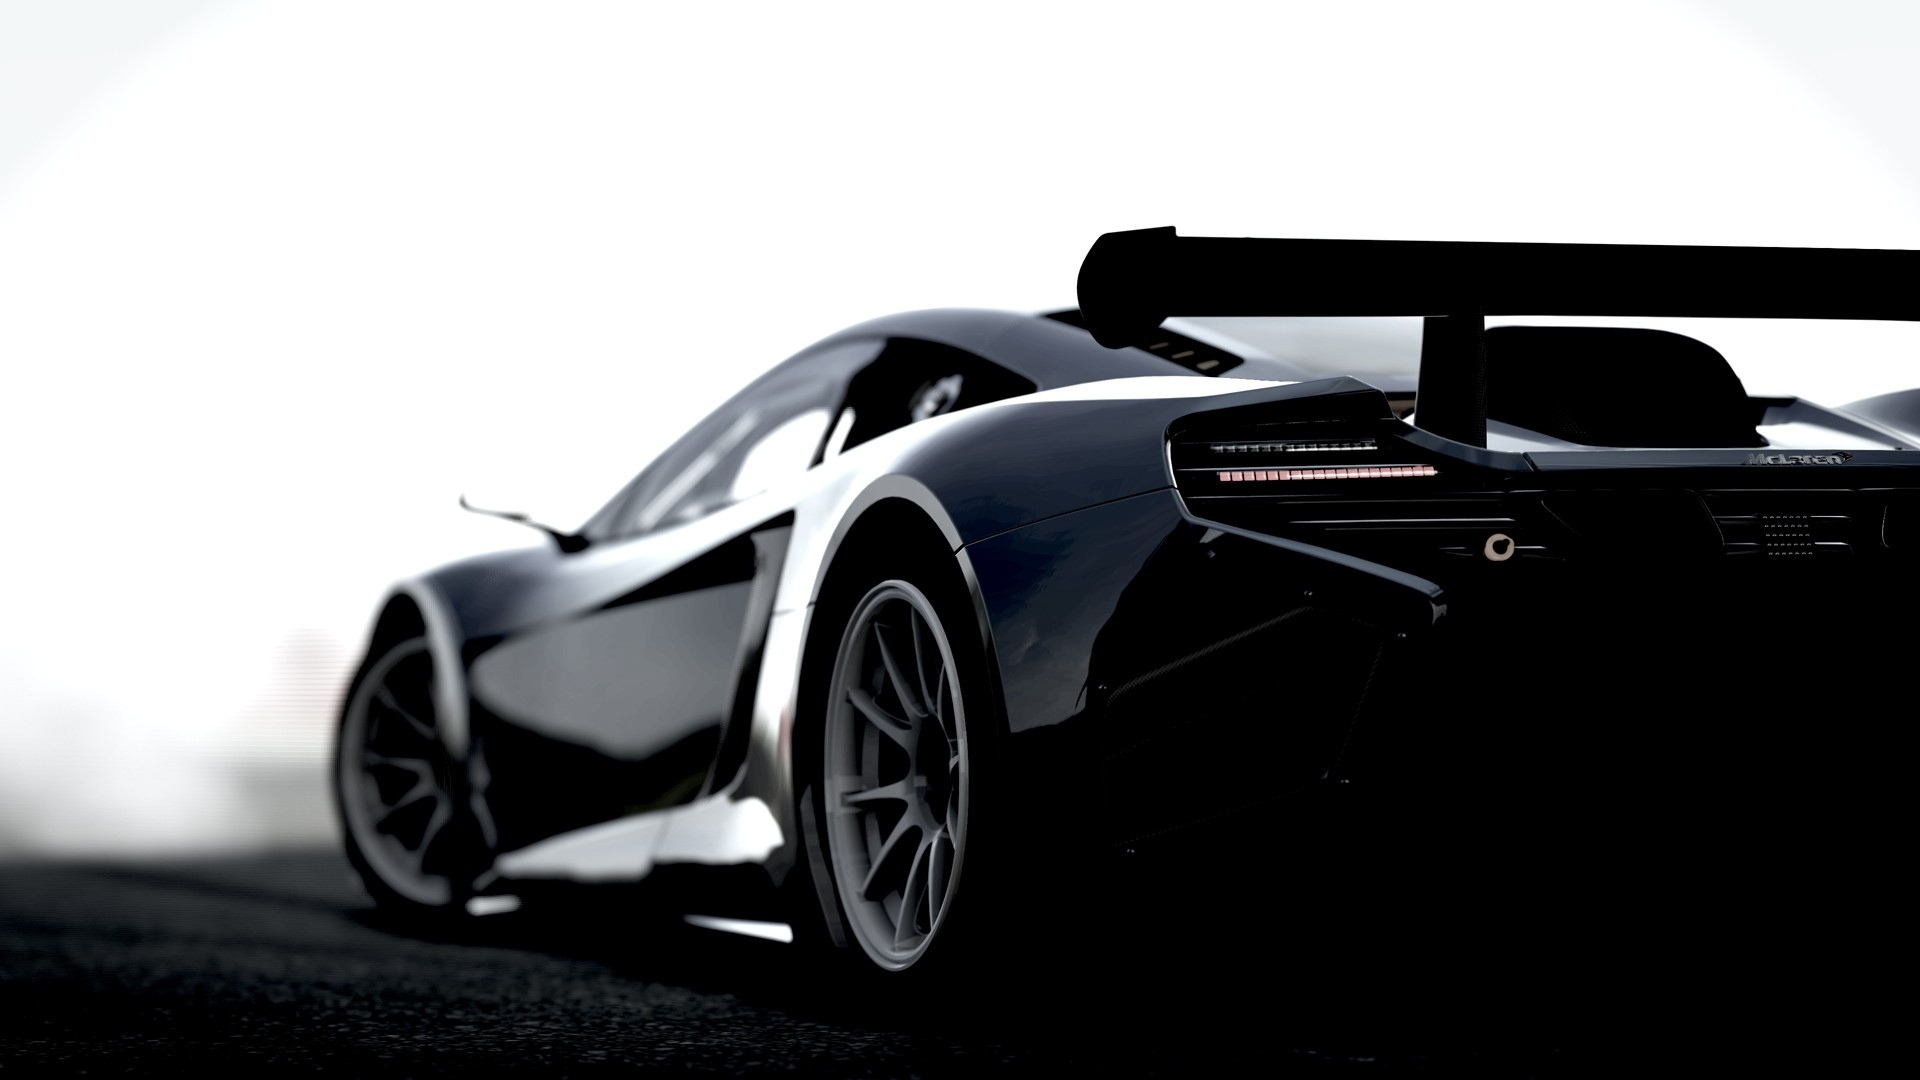 Forza 6 Wallpaper Related Keywords Suggestions   Forza 6 Wallpaper 1920x1080